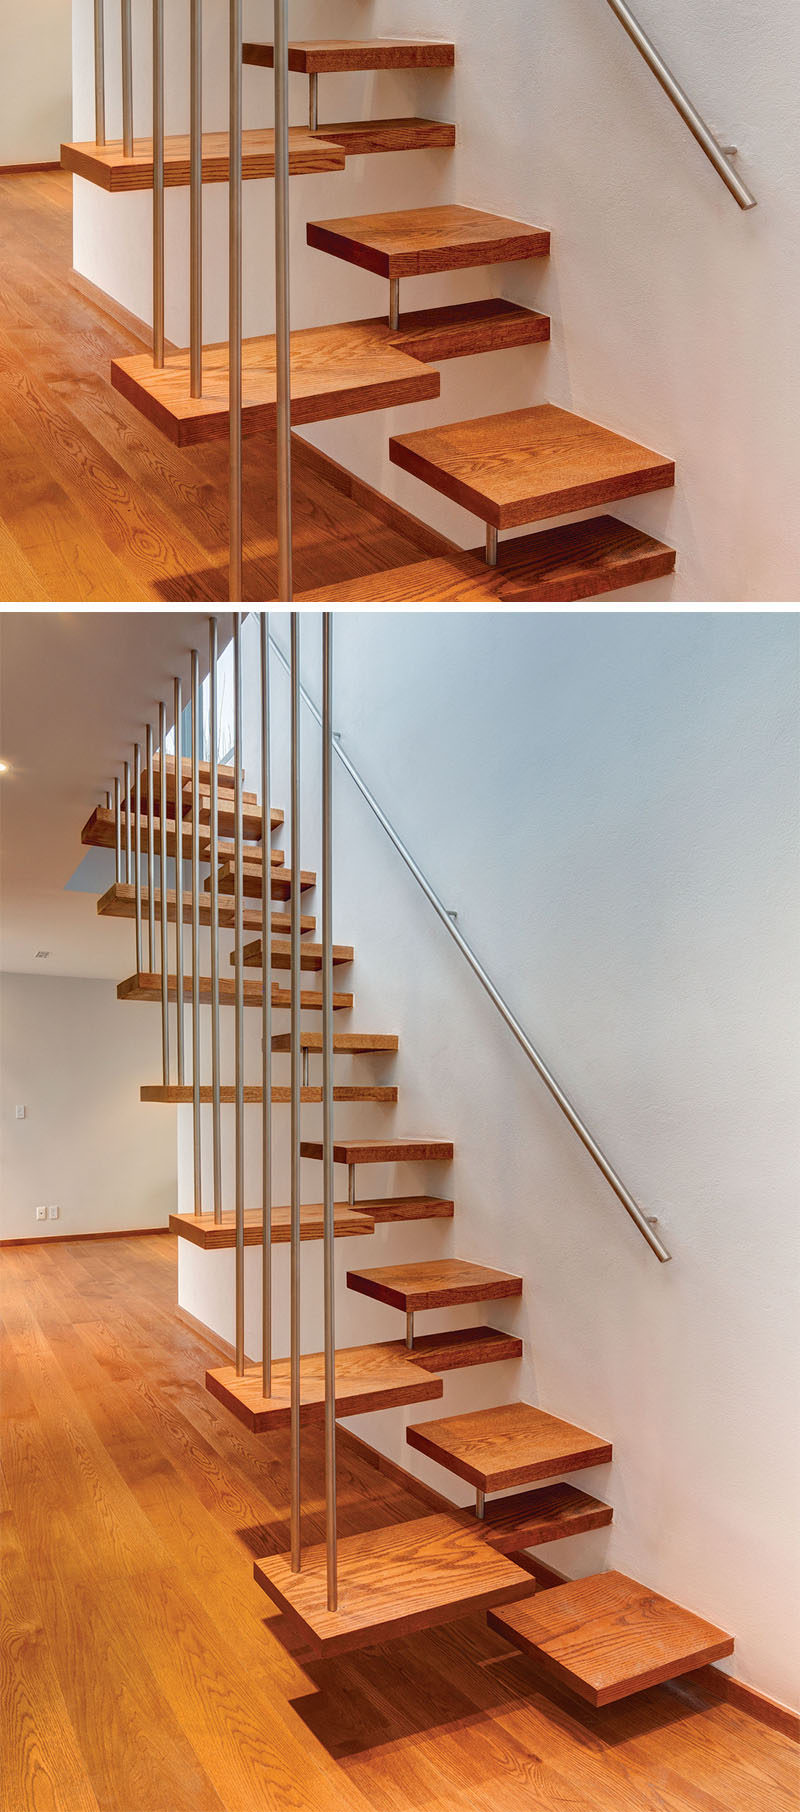 18 examples of stair details to inspire you if youre not careful - Wooden Stairs